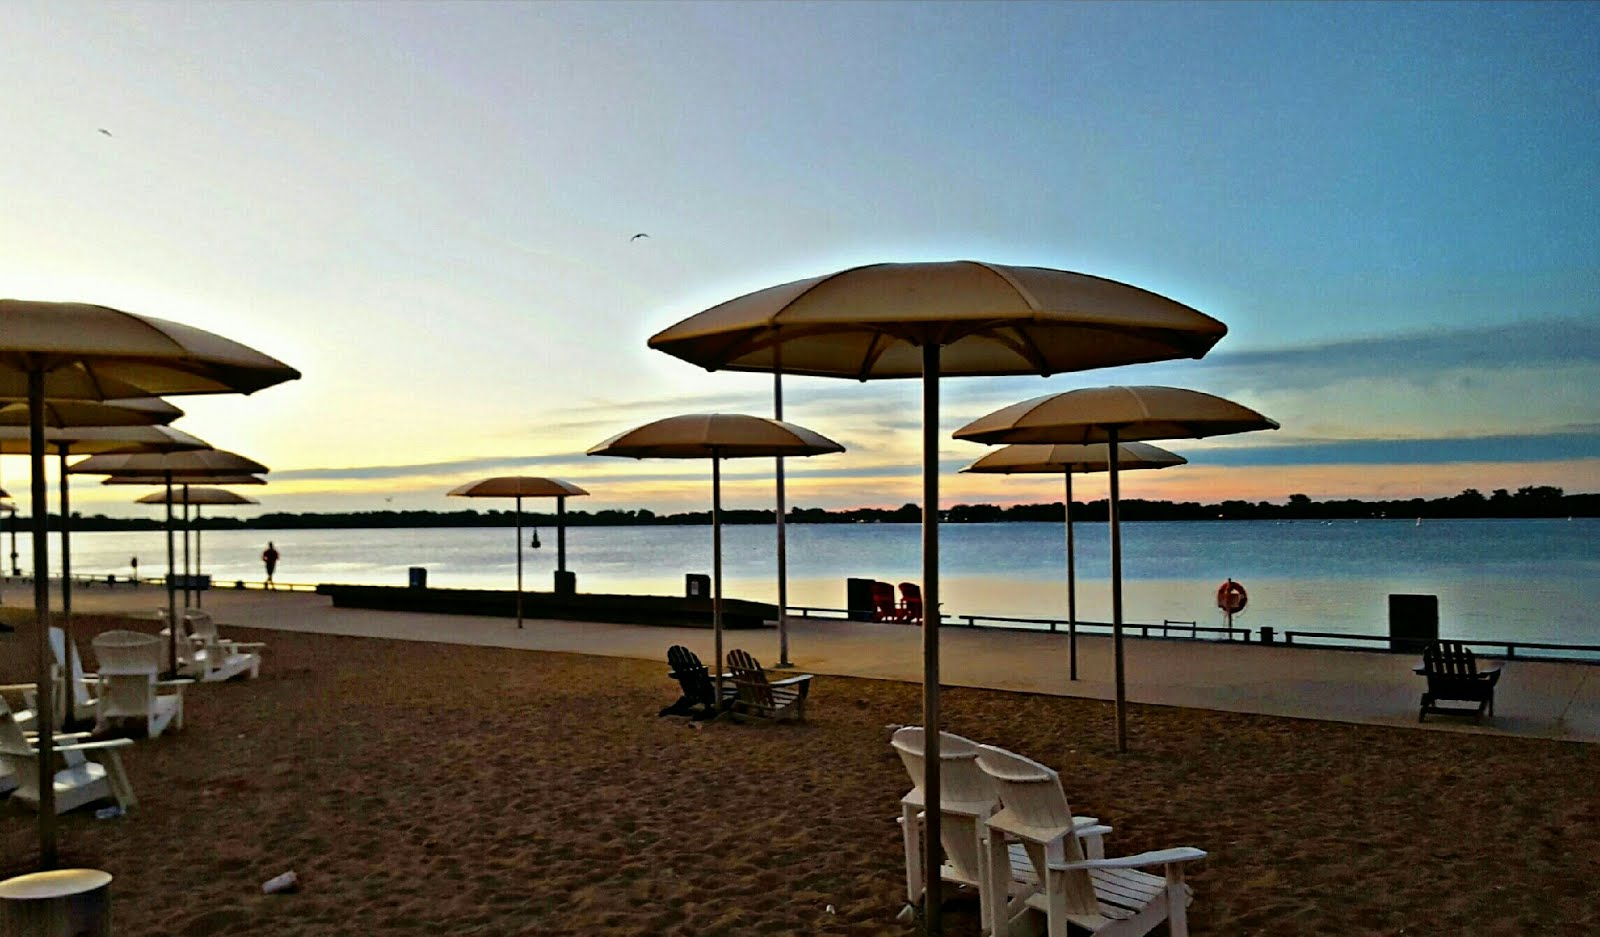 Catch The Sunset At H20 Park • 6:45 Is A Great Time For A Jog • A Book And A Coffee Perhaps...